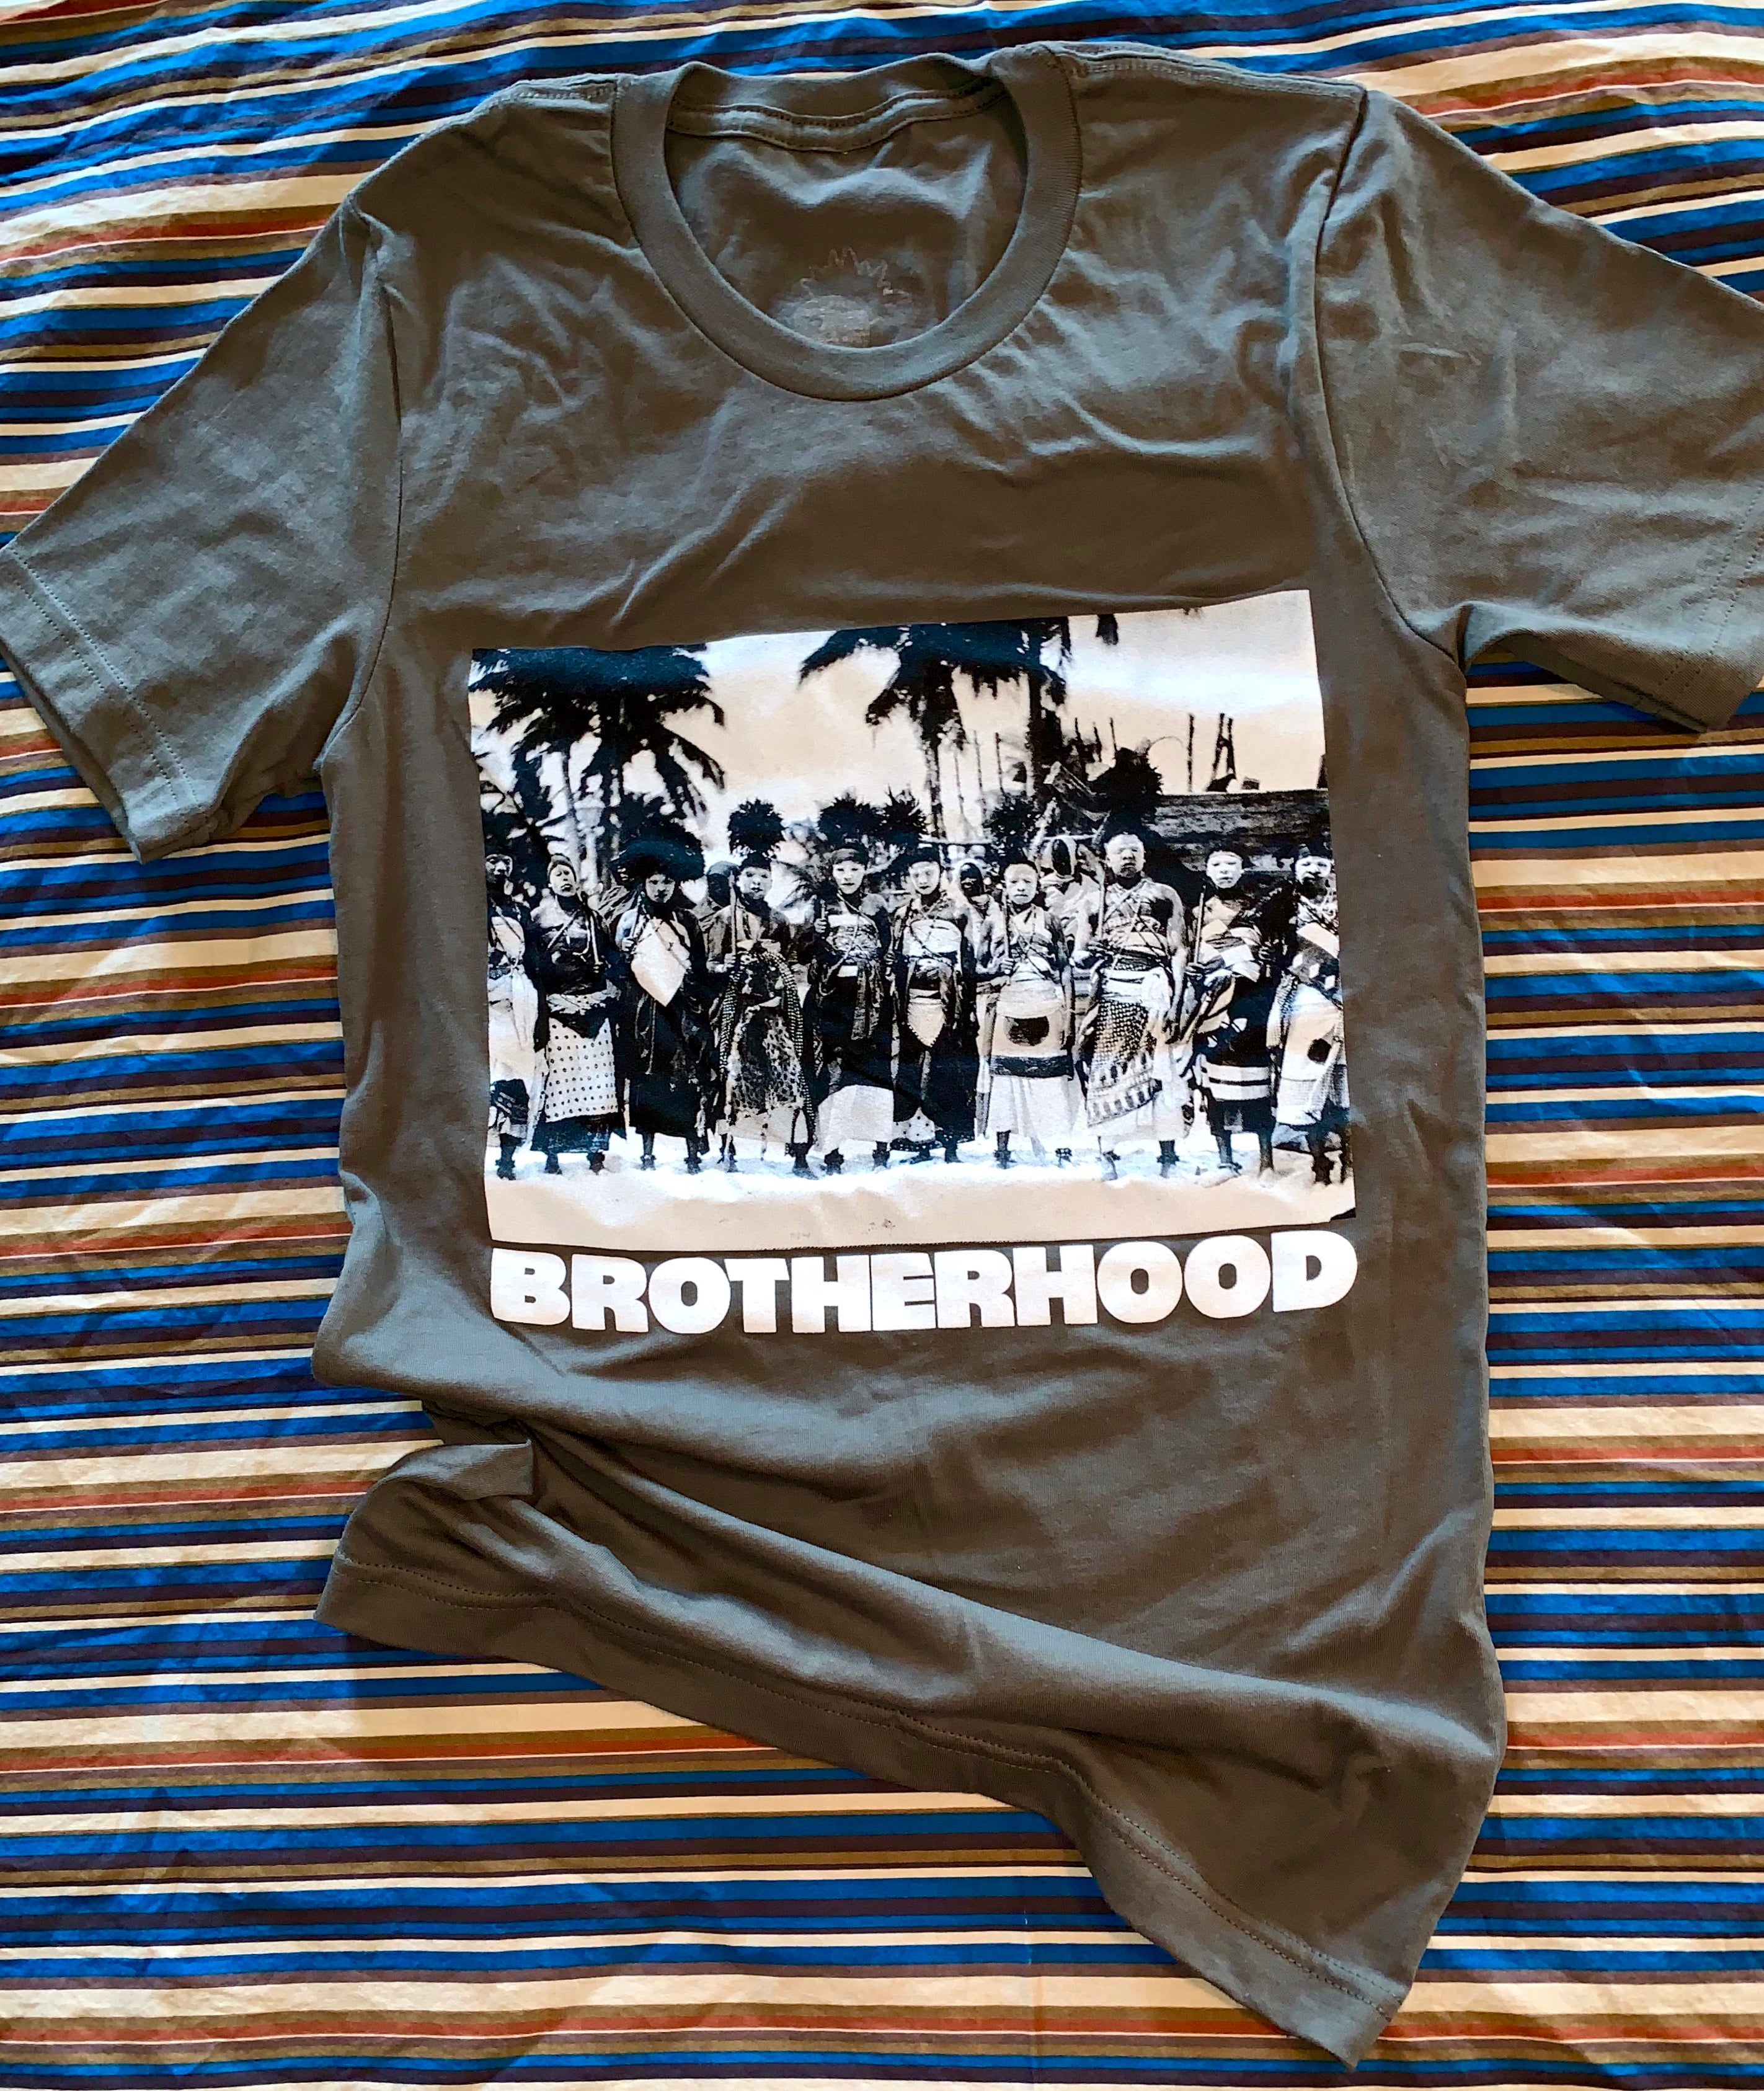 BROTHERHOOD tee